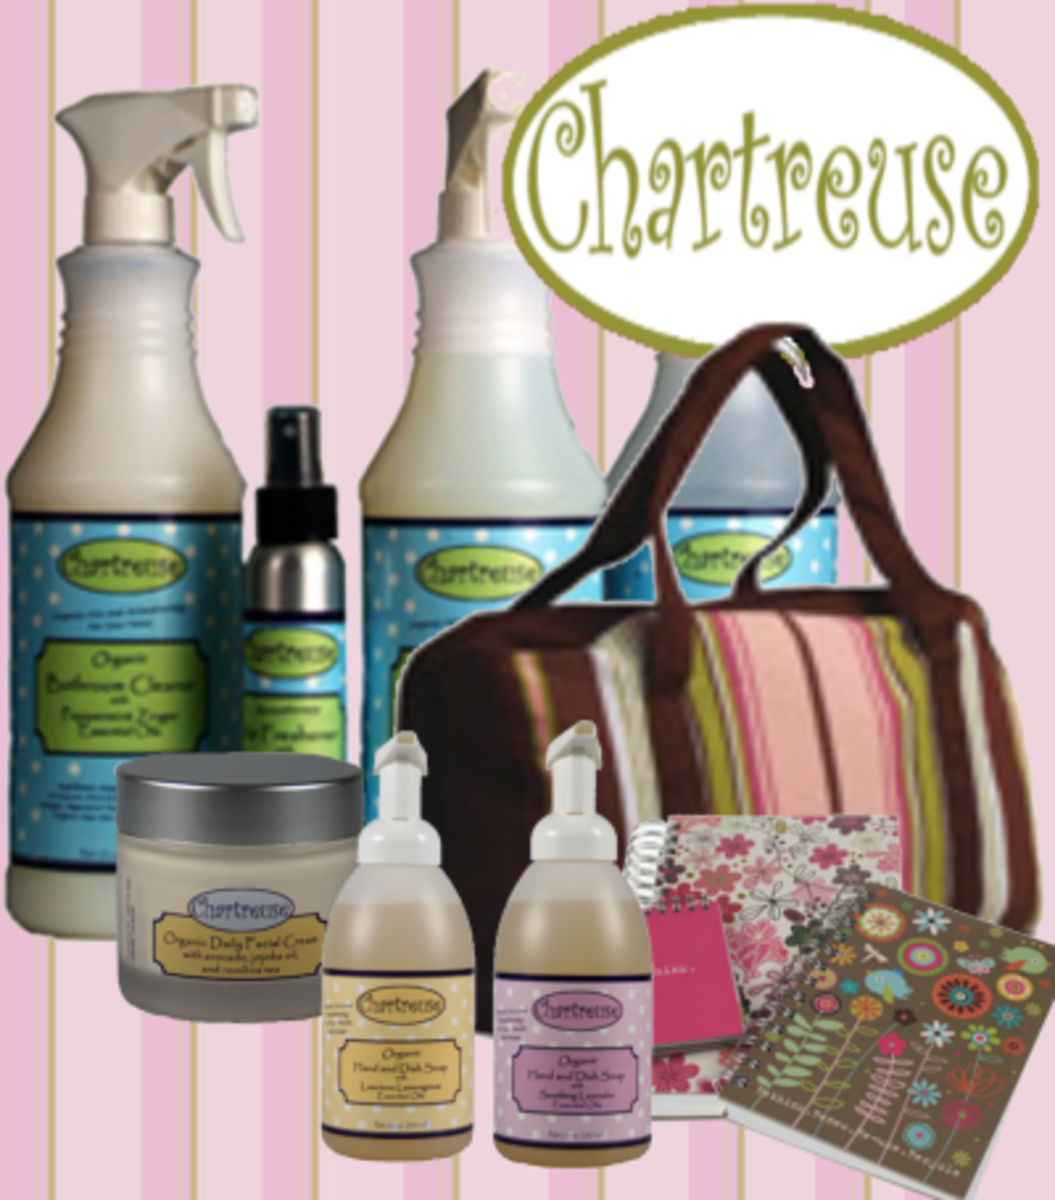 Check out the Site for More Chartreuse Eco Friendly Products!